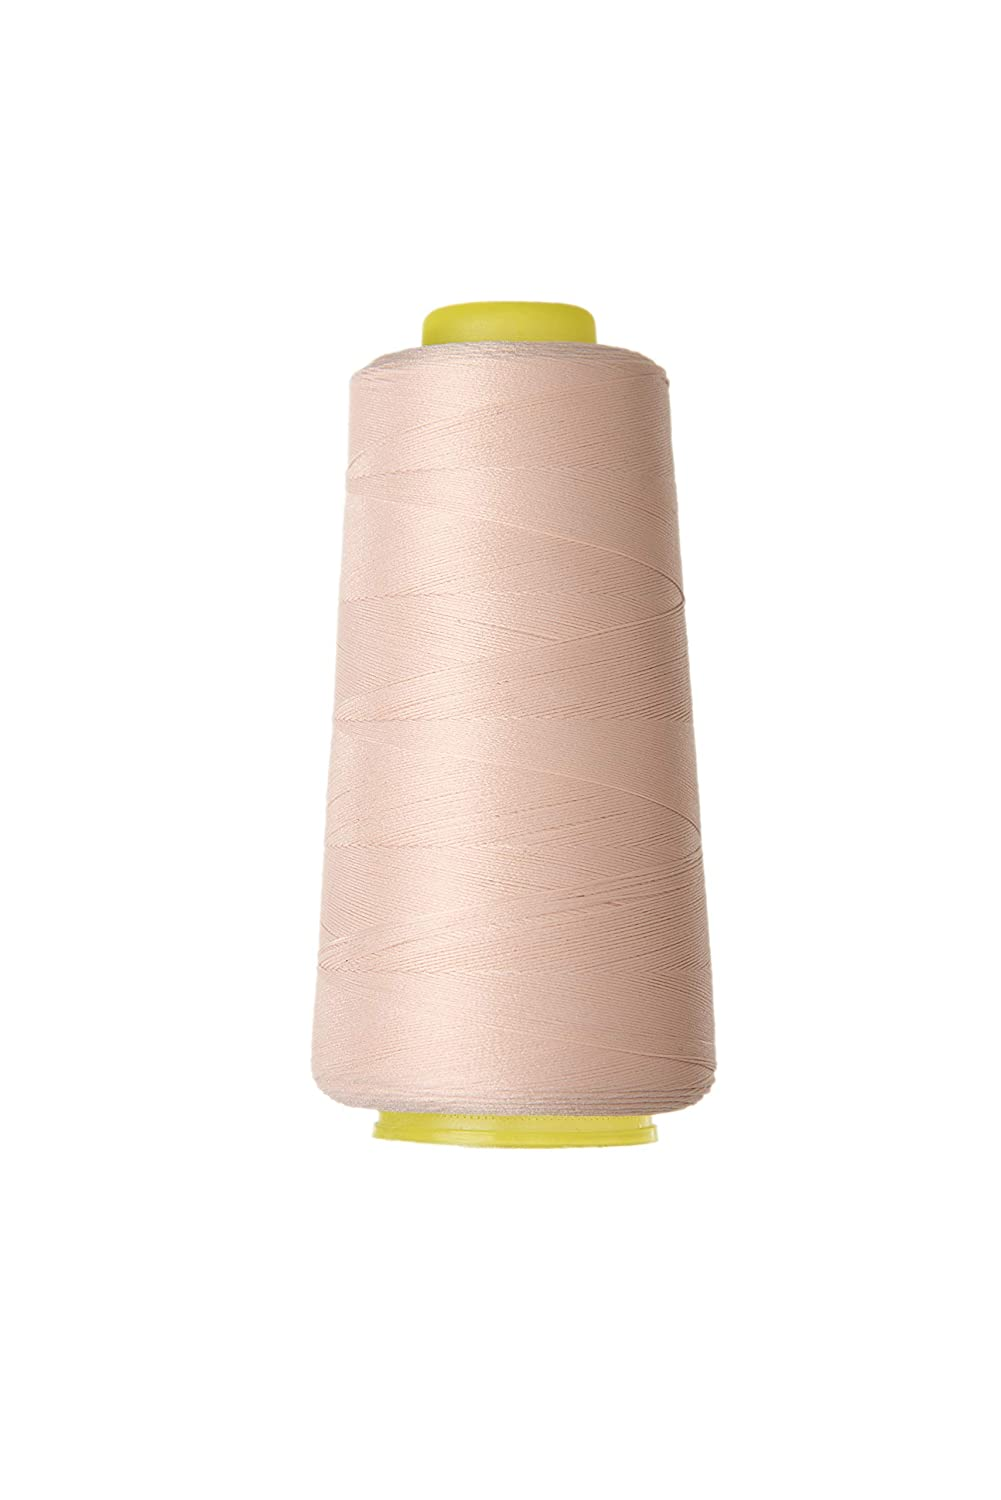 Nylon Stretch Thread 100D/2 Thread for Sewing Elastic and Knitted Fabric Underwear,Swimsuit,Yoga Wear,Cycling Wear (Flesh)